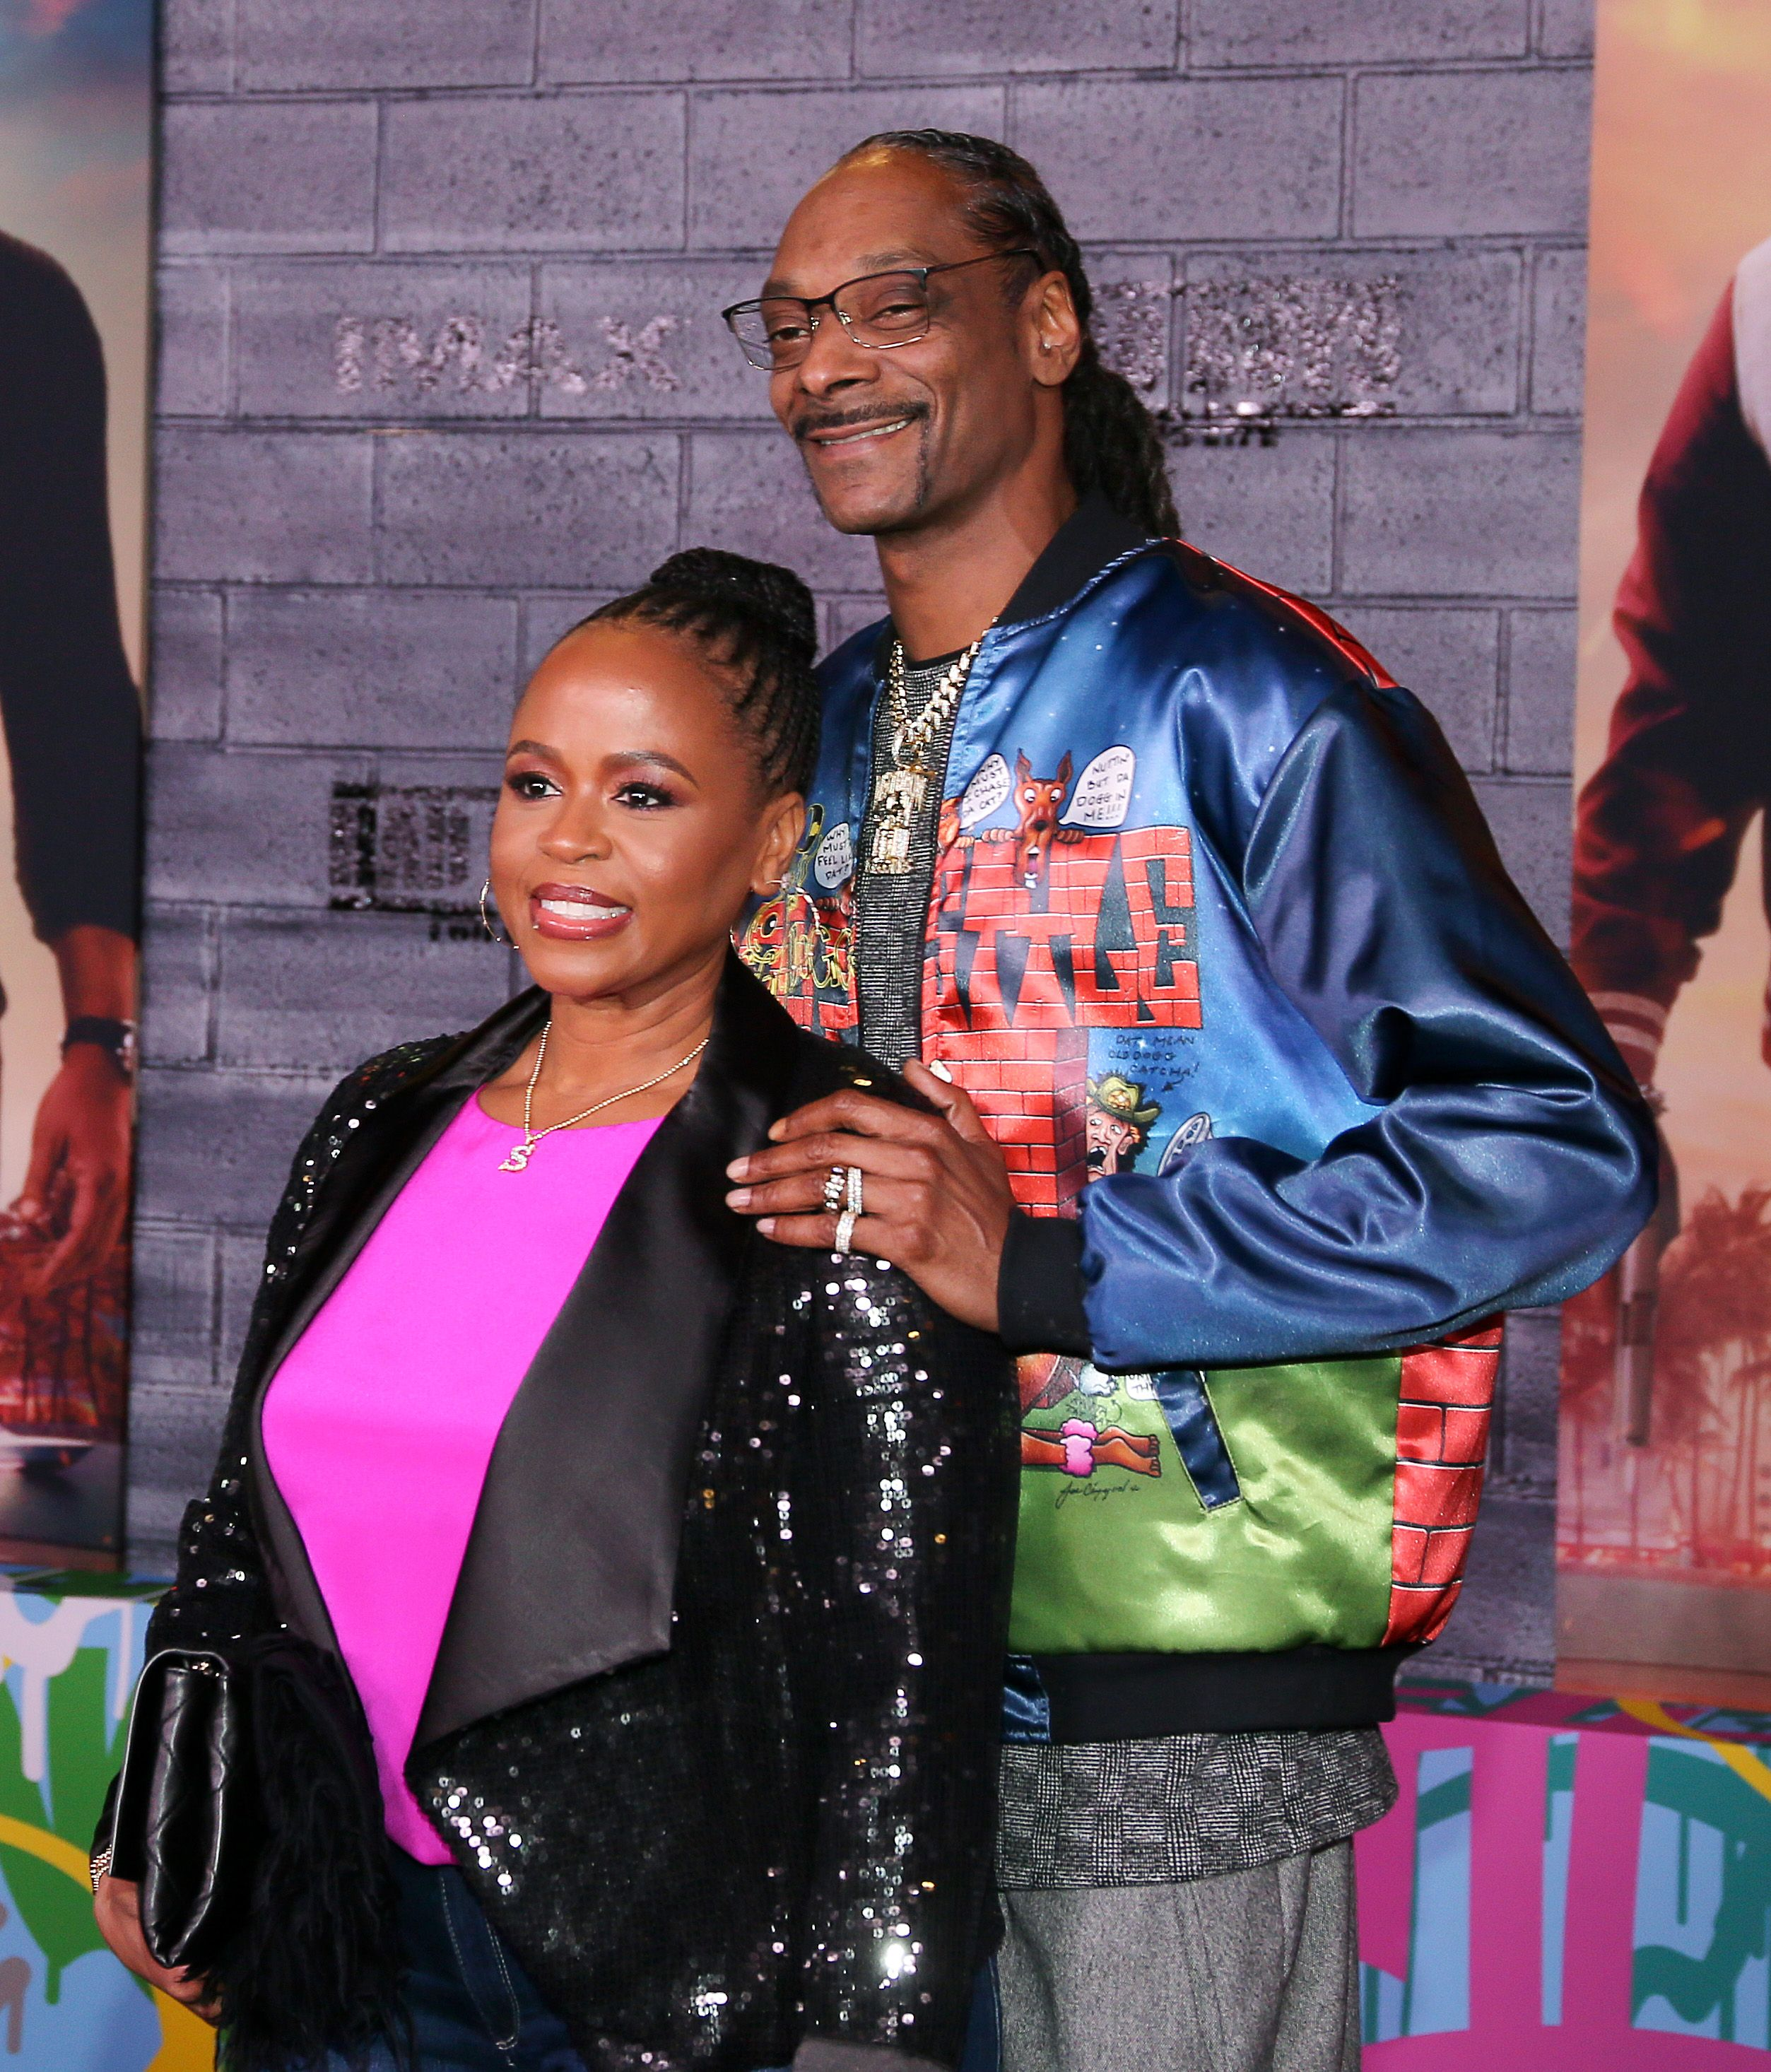 """Shante Broadus and Snoop Dogg at the world premiere of """"Bad Boys for Life"""" on January 14, 2020 in Hollywood.   Photo: Getty Images"""